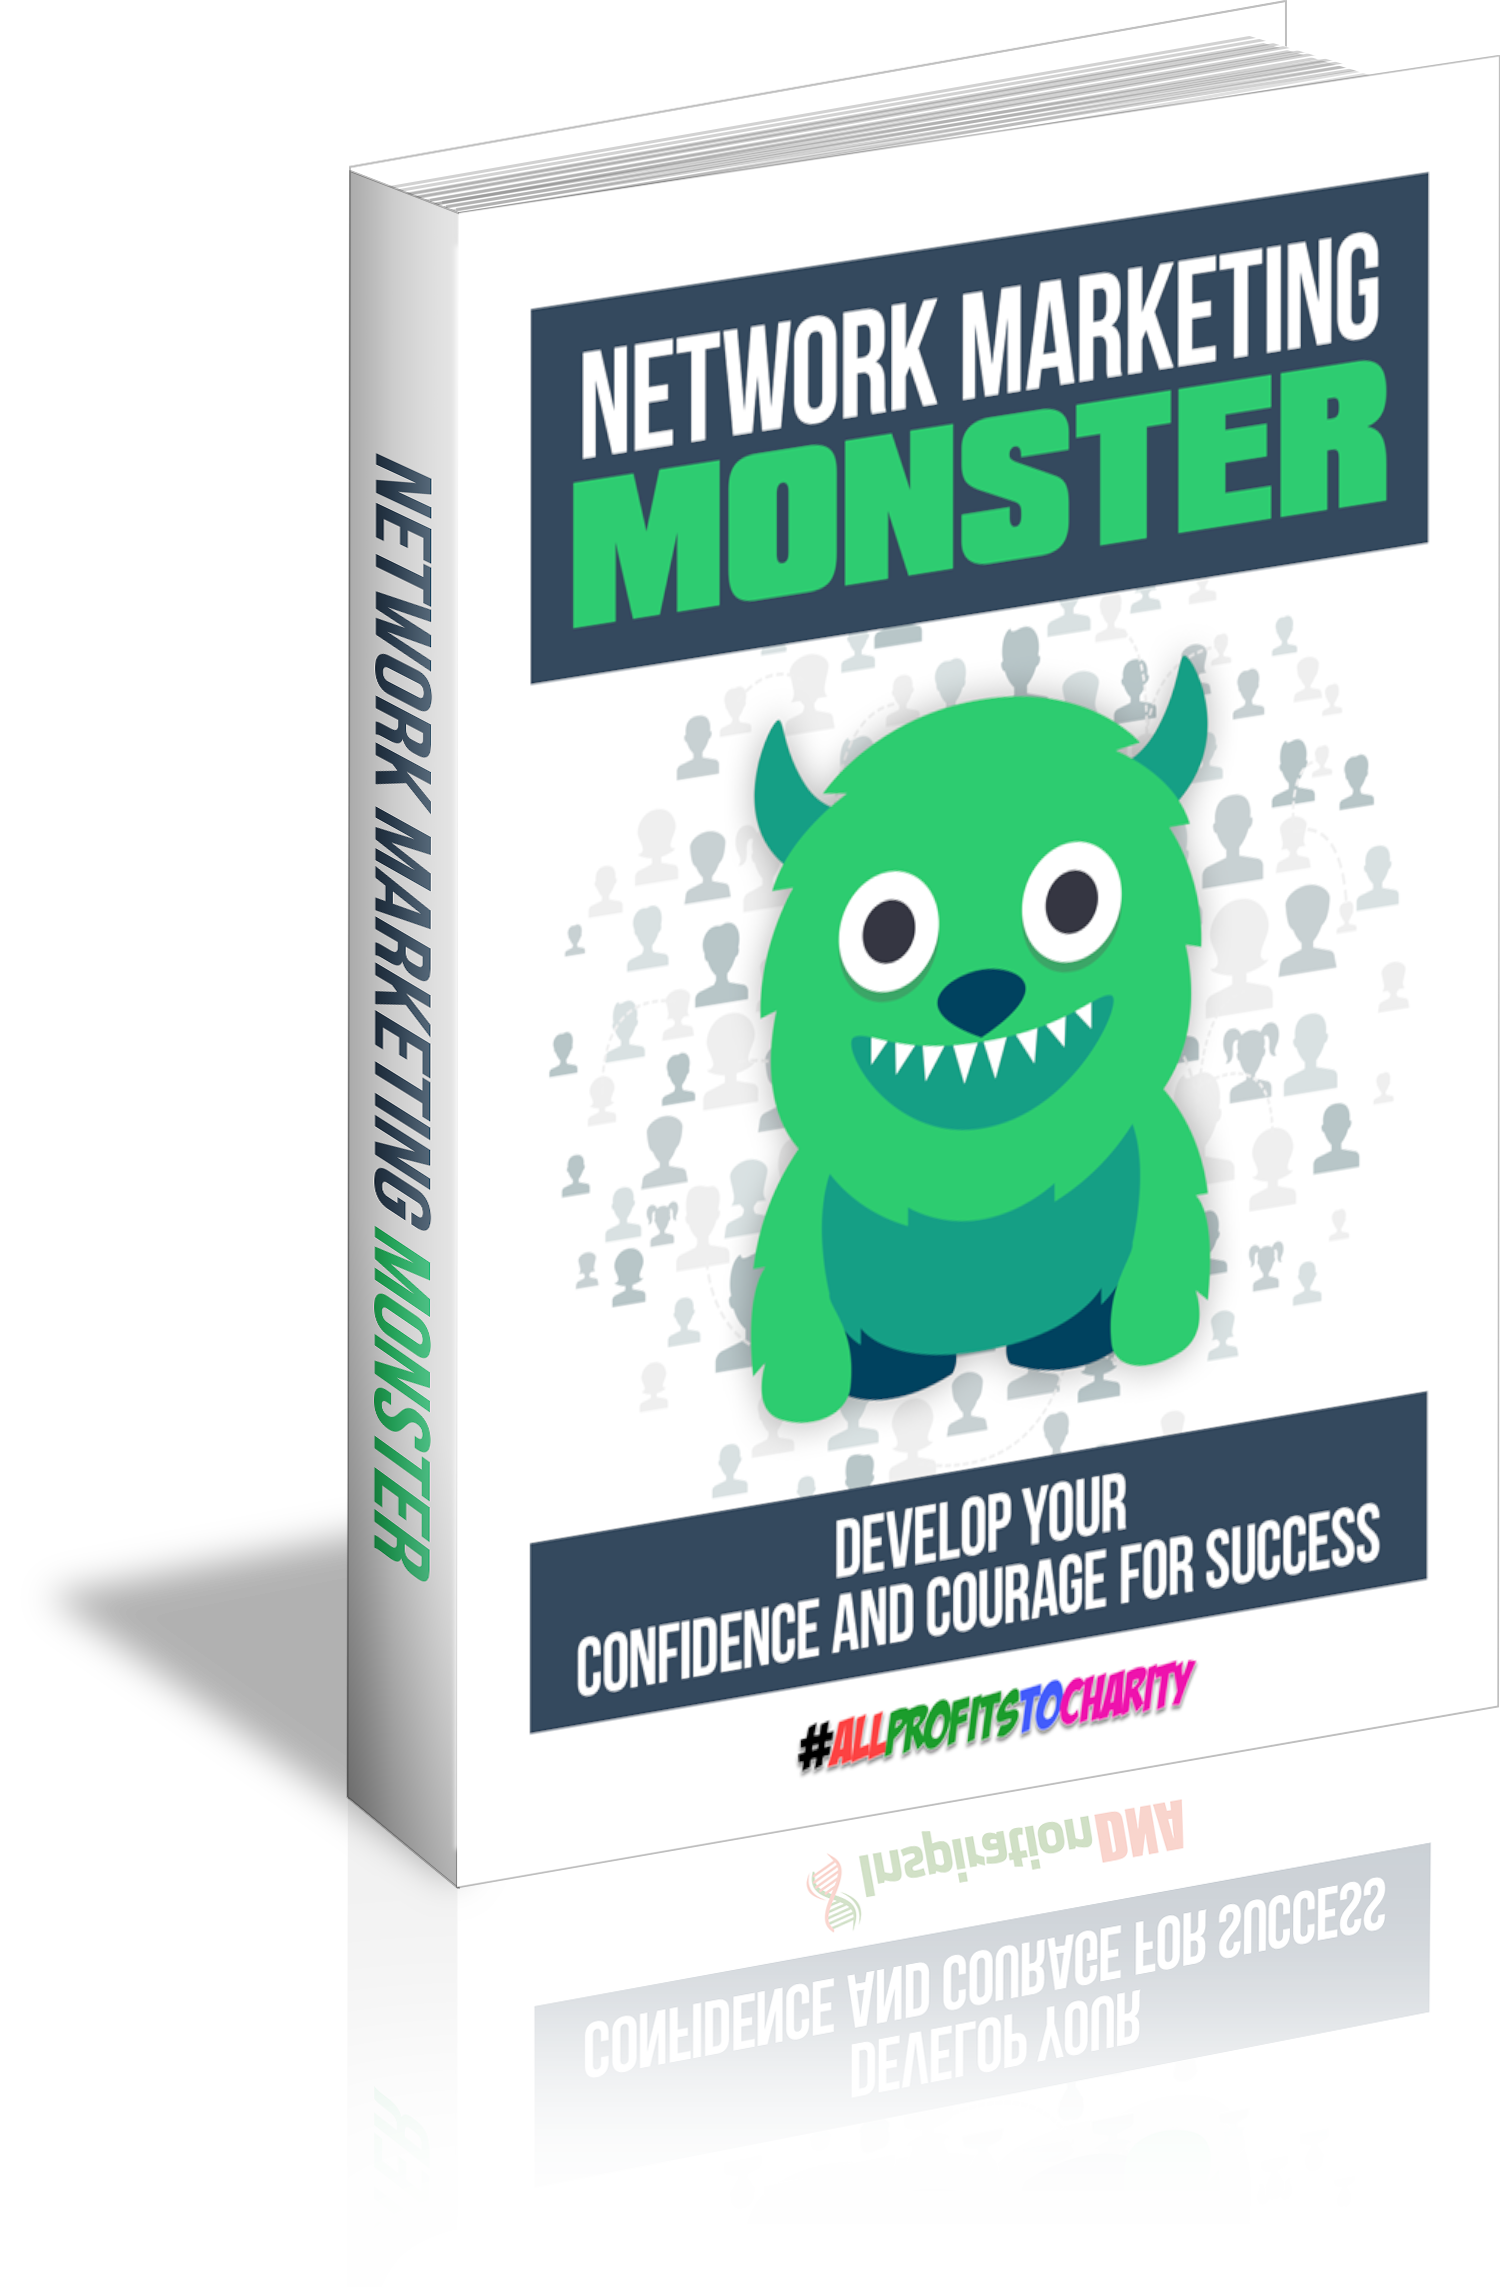 Network Marketing Monster cover